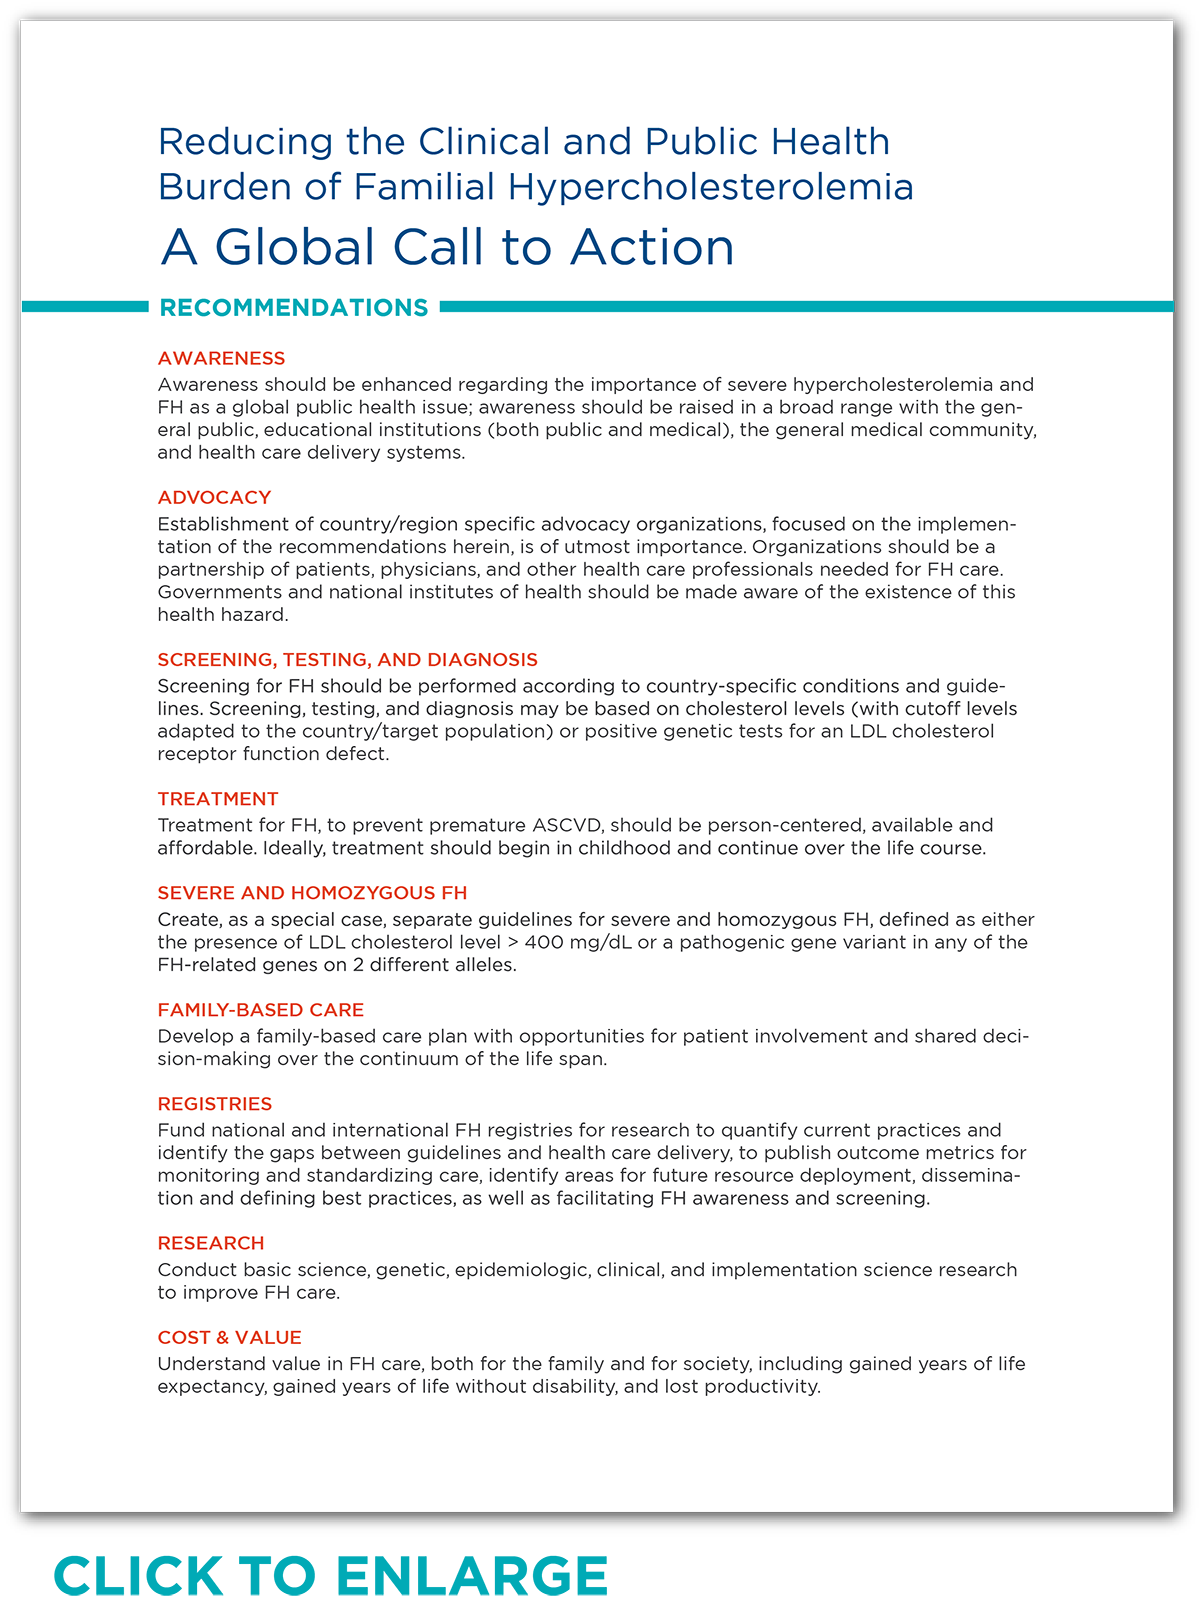 Global Call to Action Recommendations